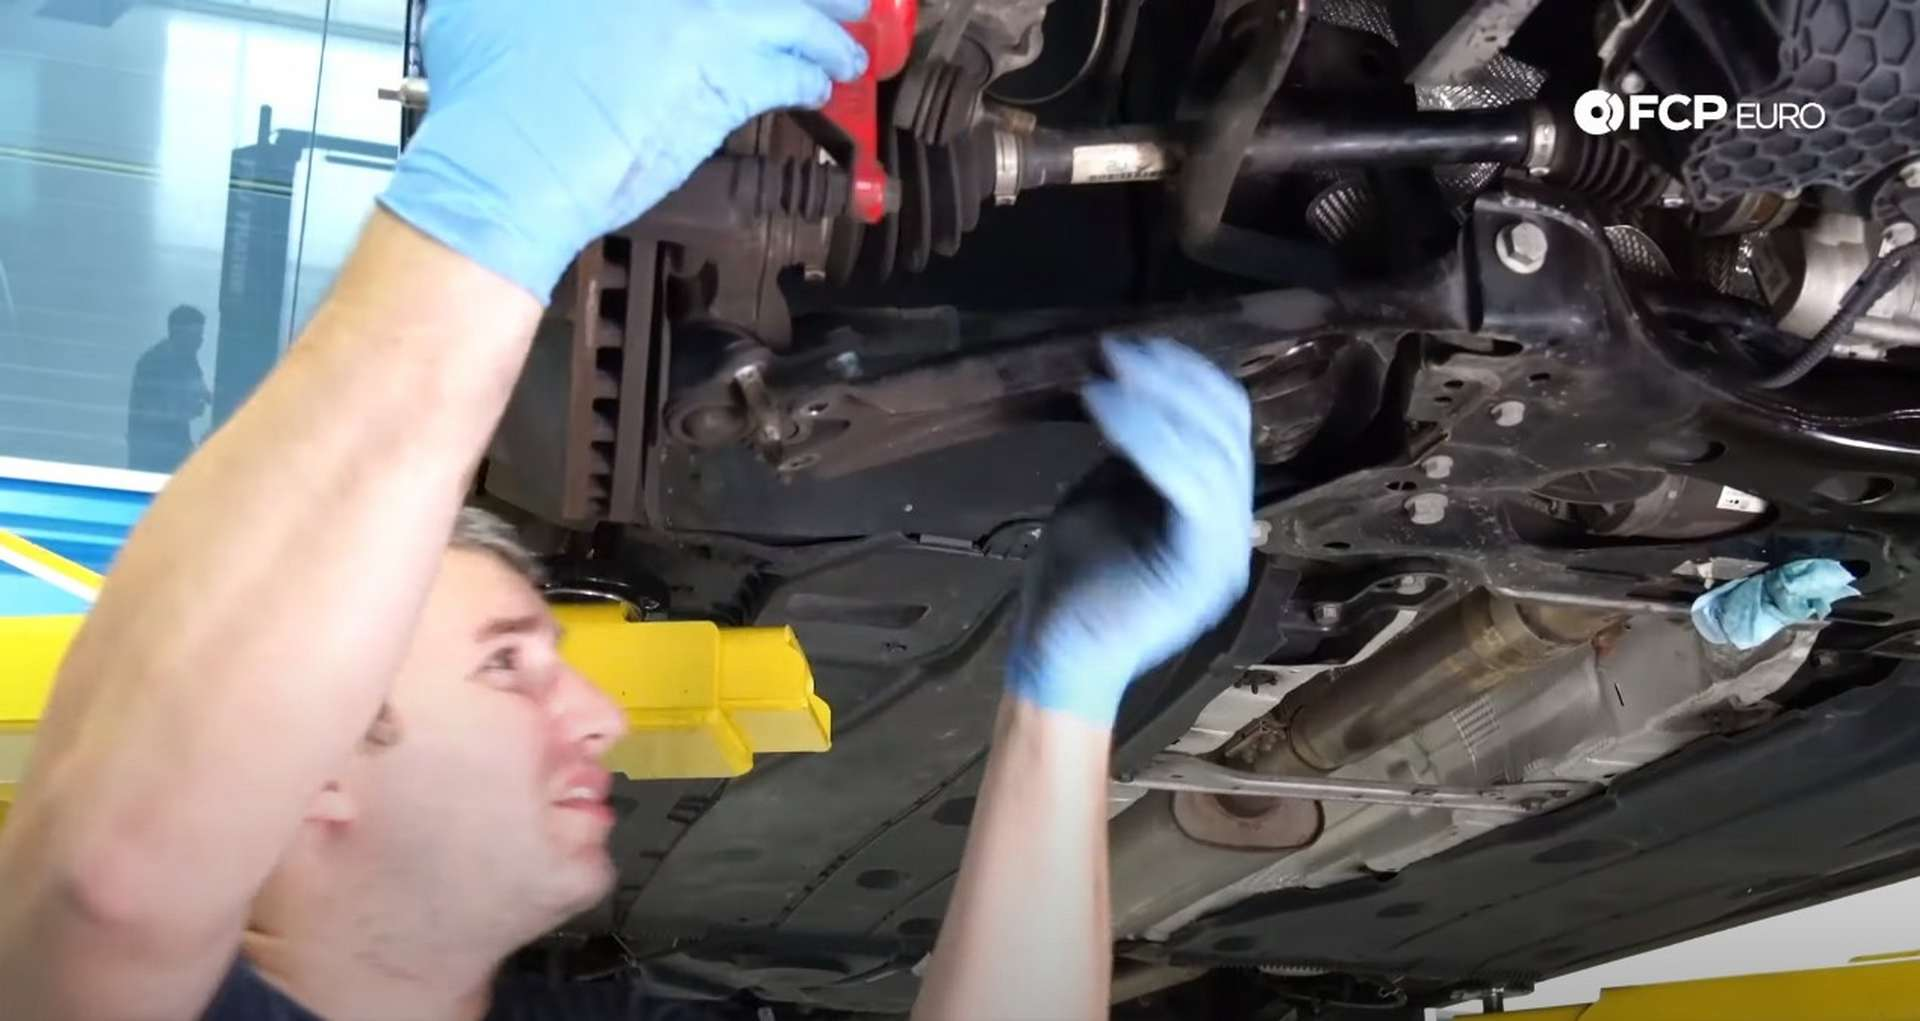 26-DIY_VW_GTI_Clutch-Job-Removing-Charge-Pipe